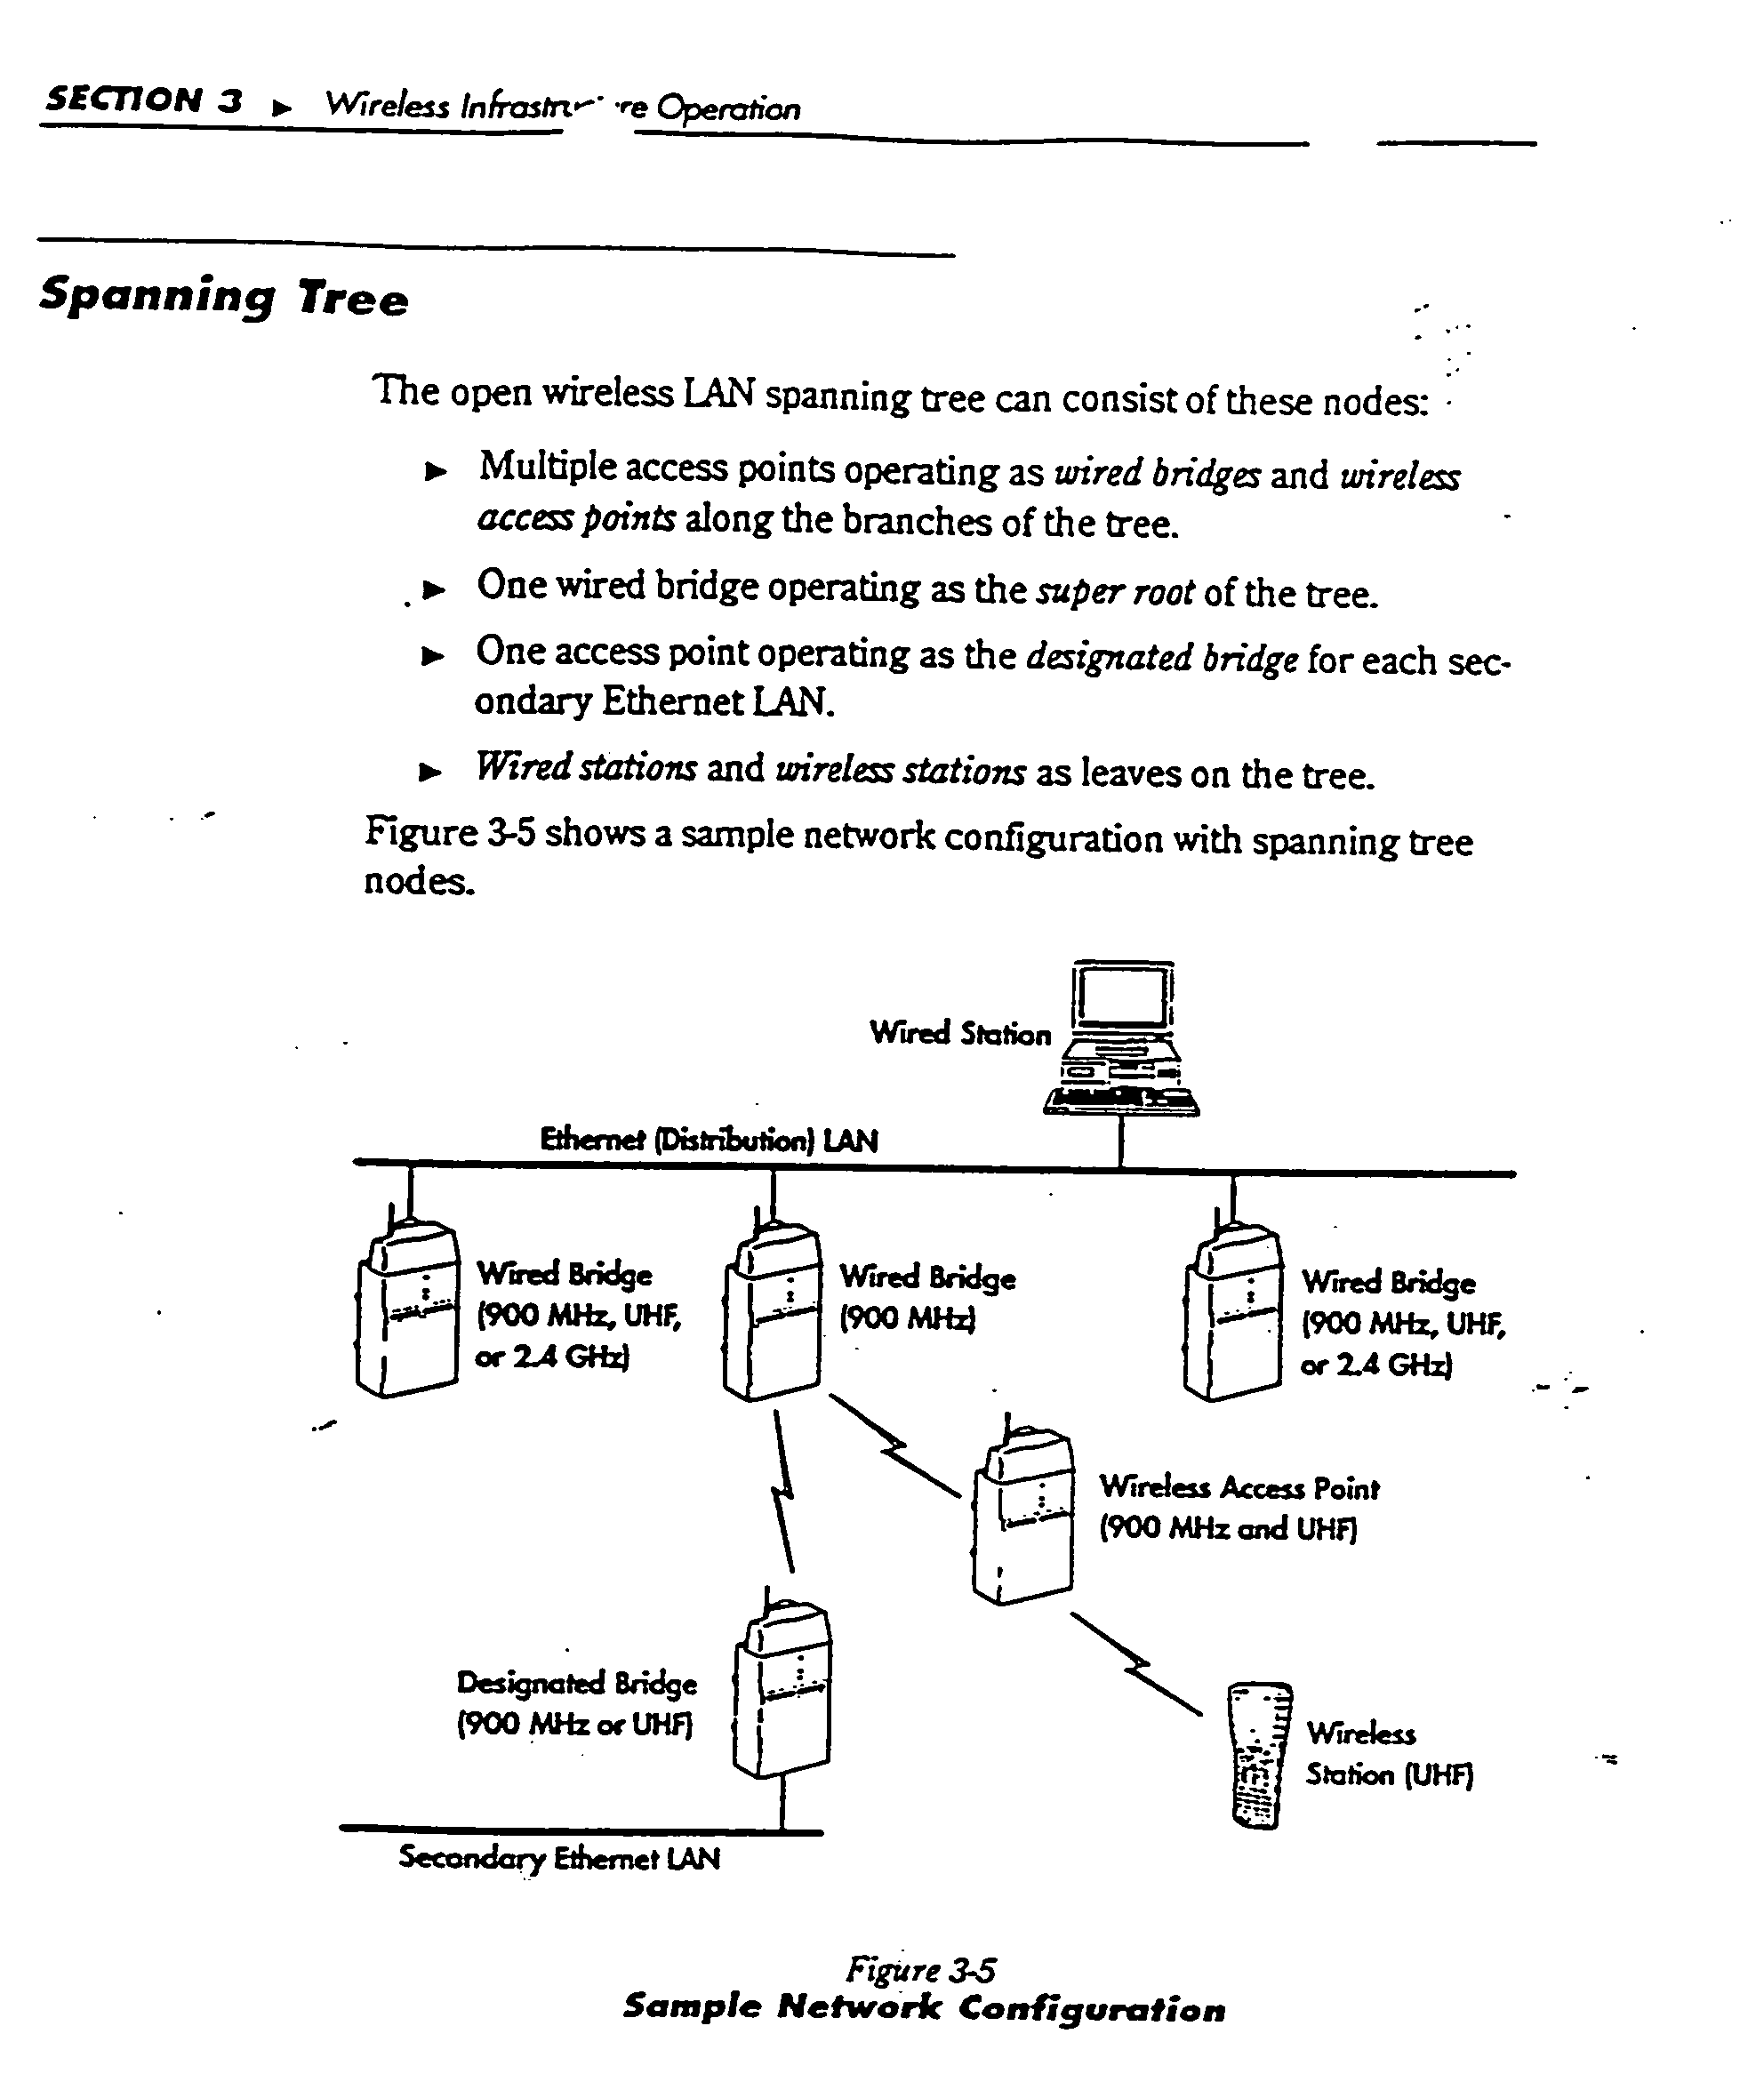 Us20050025129a1 Enhanced Mobility And Address Resolution In A Wired Network Diagram Bridge Figure 20050203 P00060